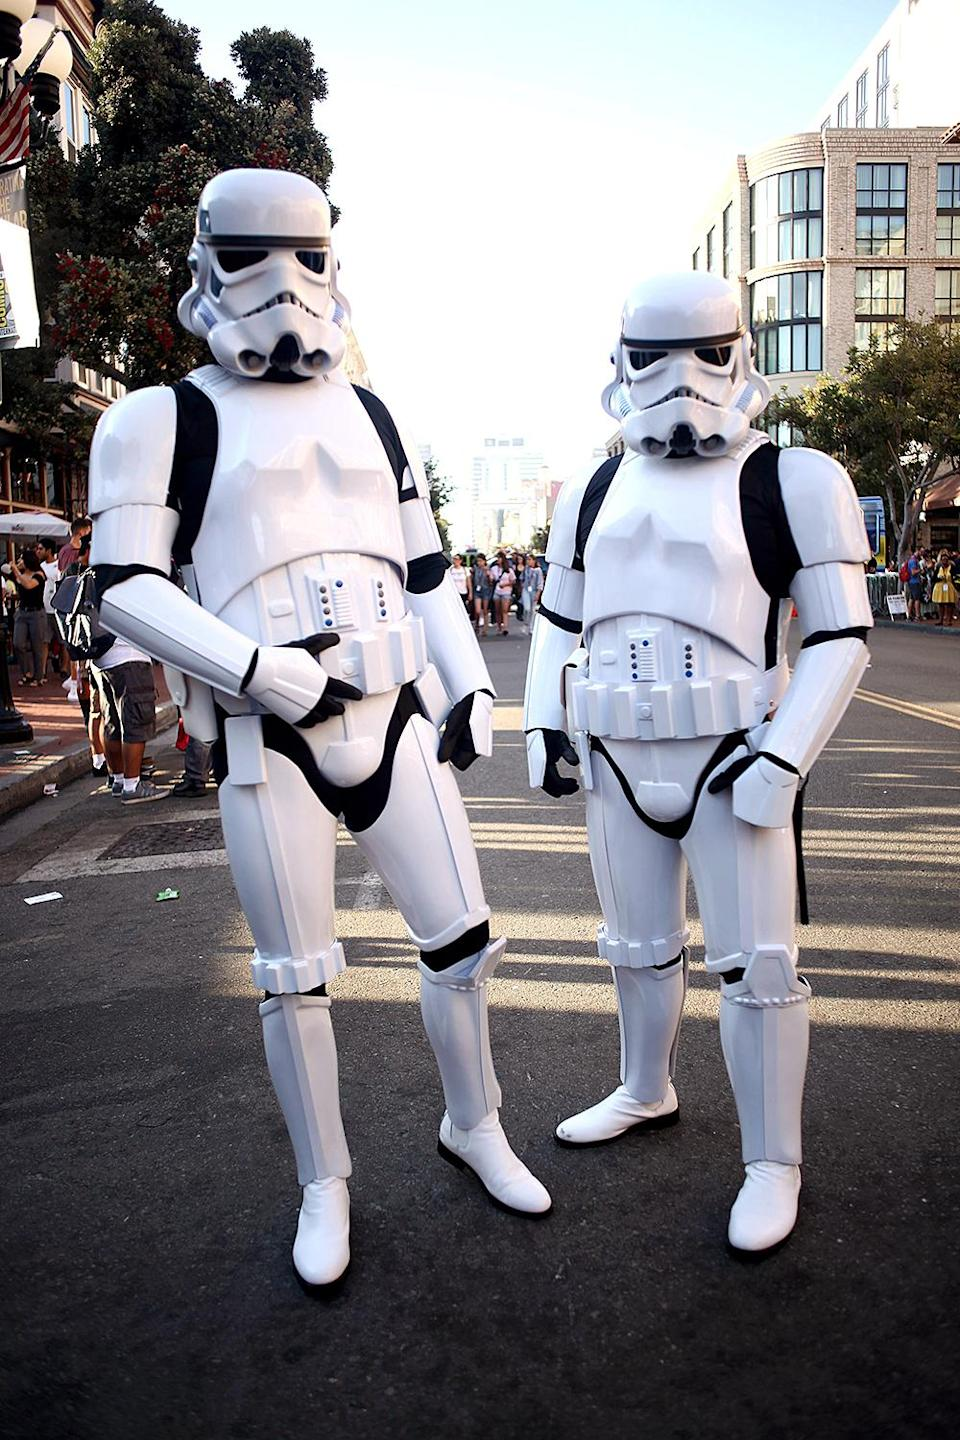 <p>Cosplayers dressed as Stormtroopers at Comic-Con International on July 19, 2018, in San Diego. (Photo: Tommaso Boddi/Getty Images) </p>